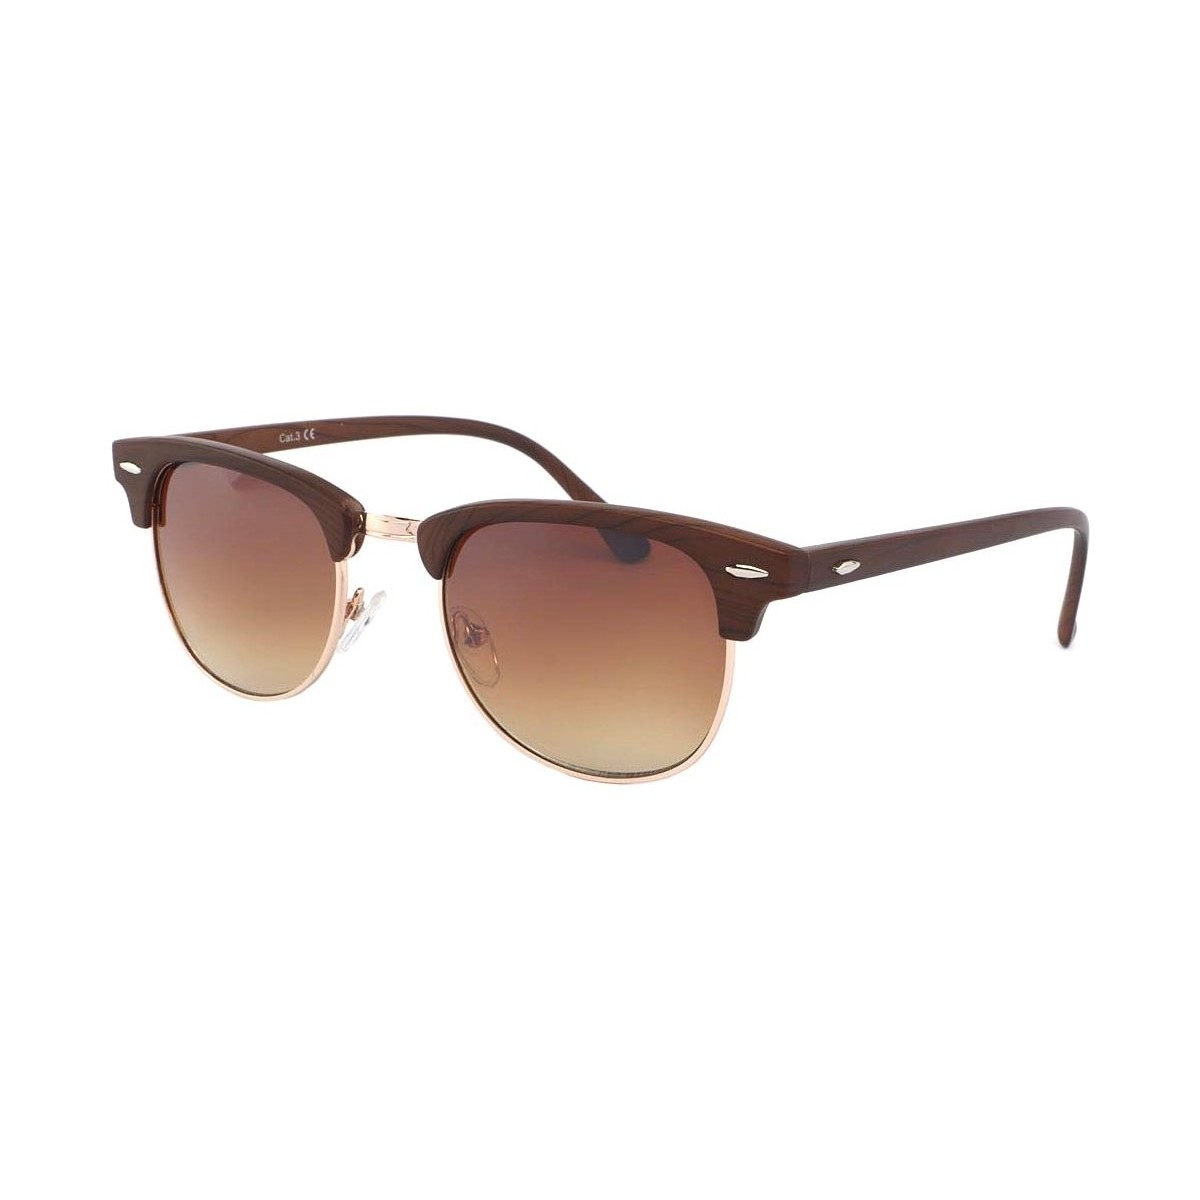 Eye Wear Lunettes de soleil Bois Marron Goeth Marron